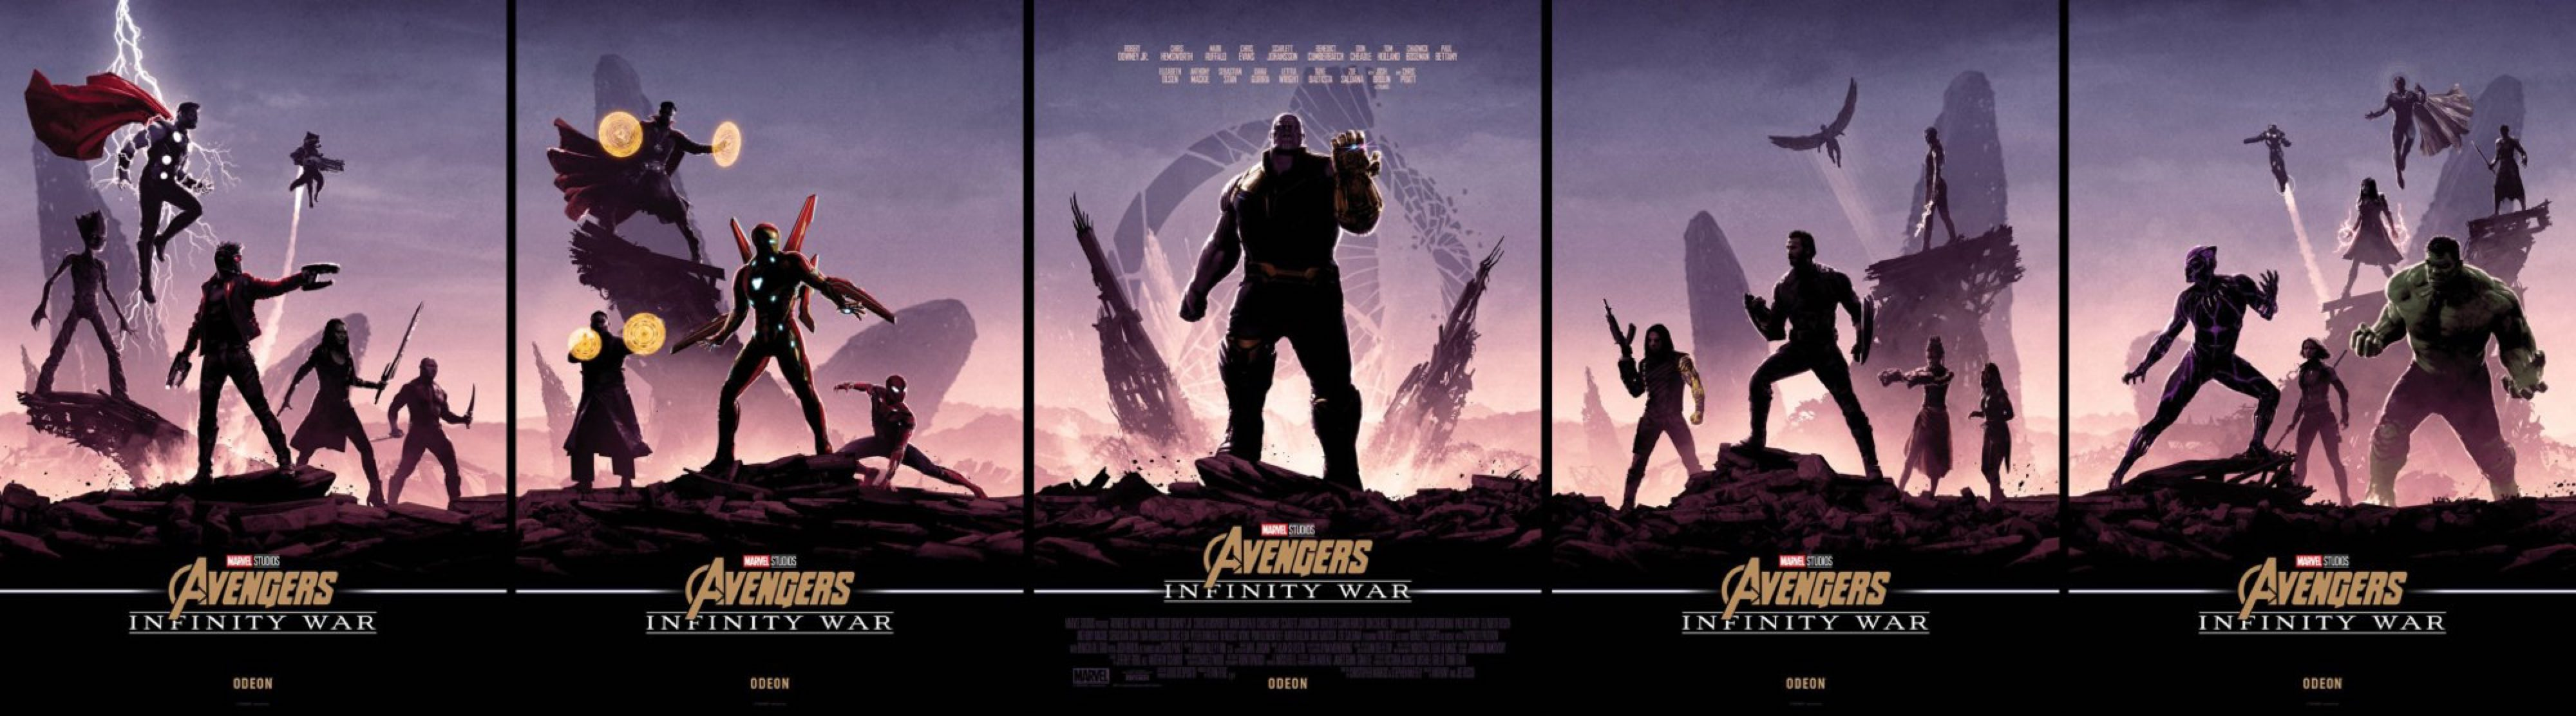 these matt ferguson infinity war posters are incredible